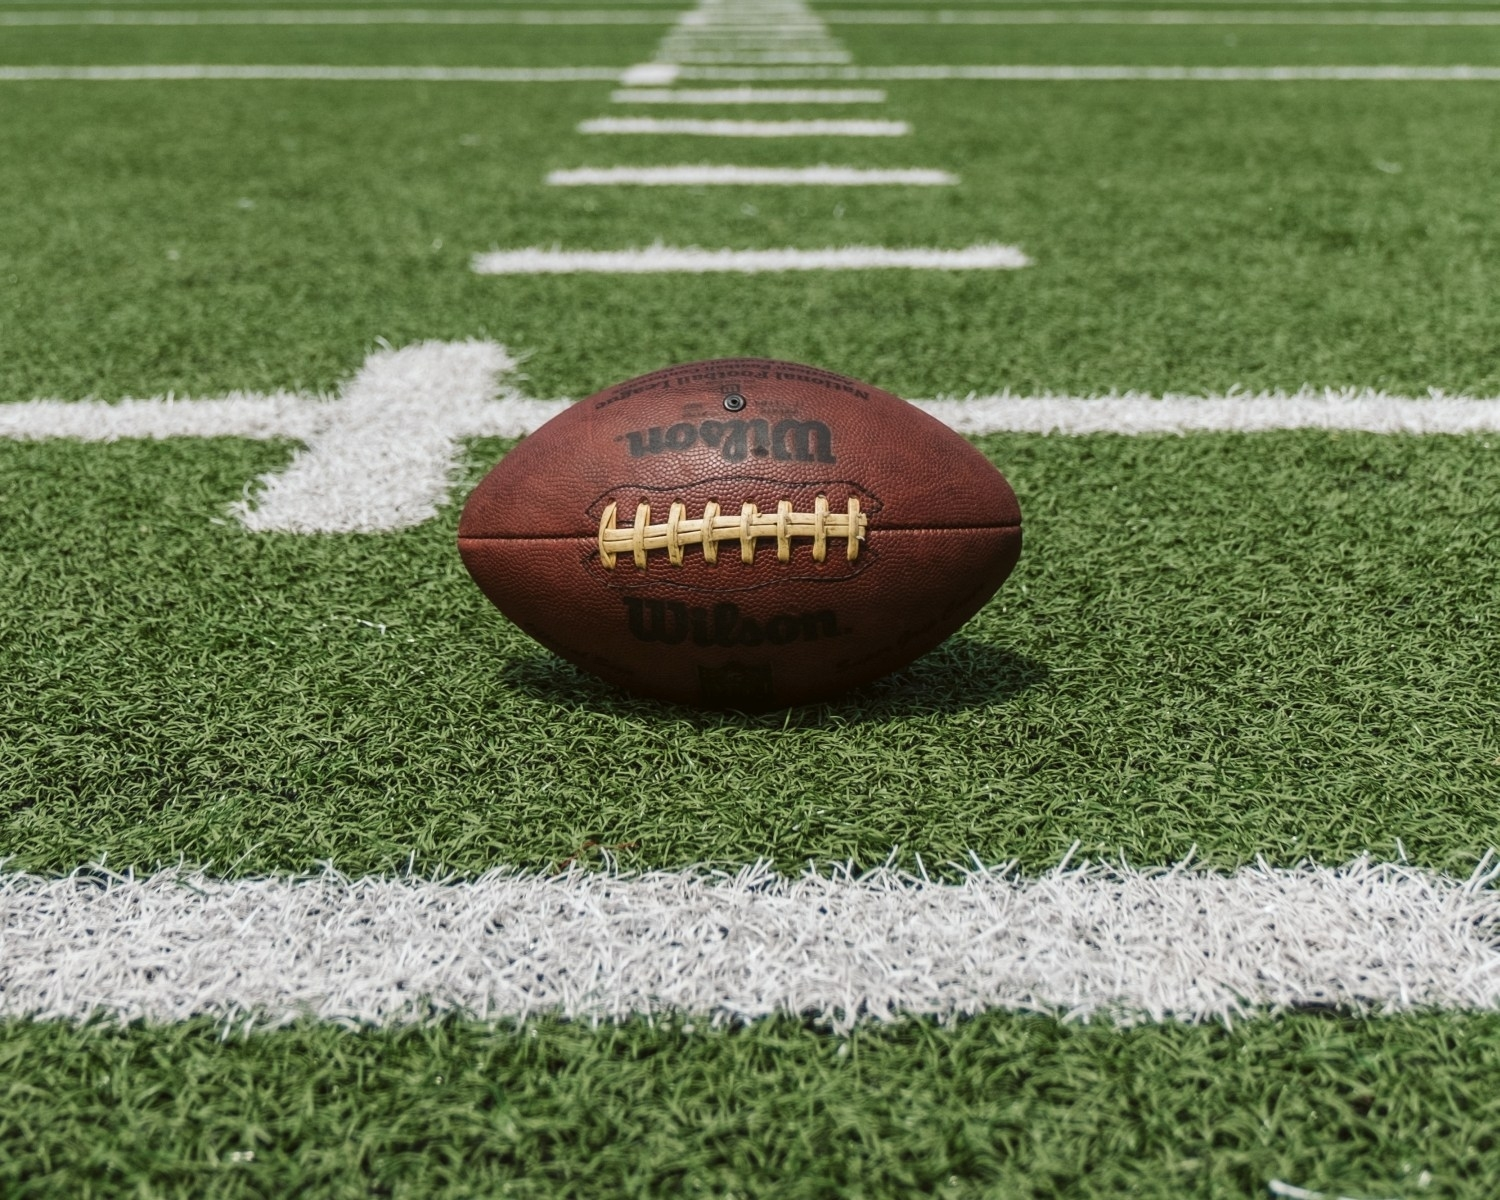 Super Bowl Celebrations In Miami Beach | Continuum South Beach within Super Bowl At Miami